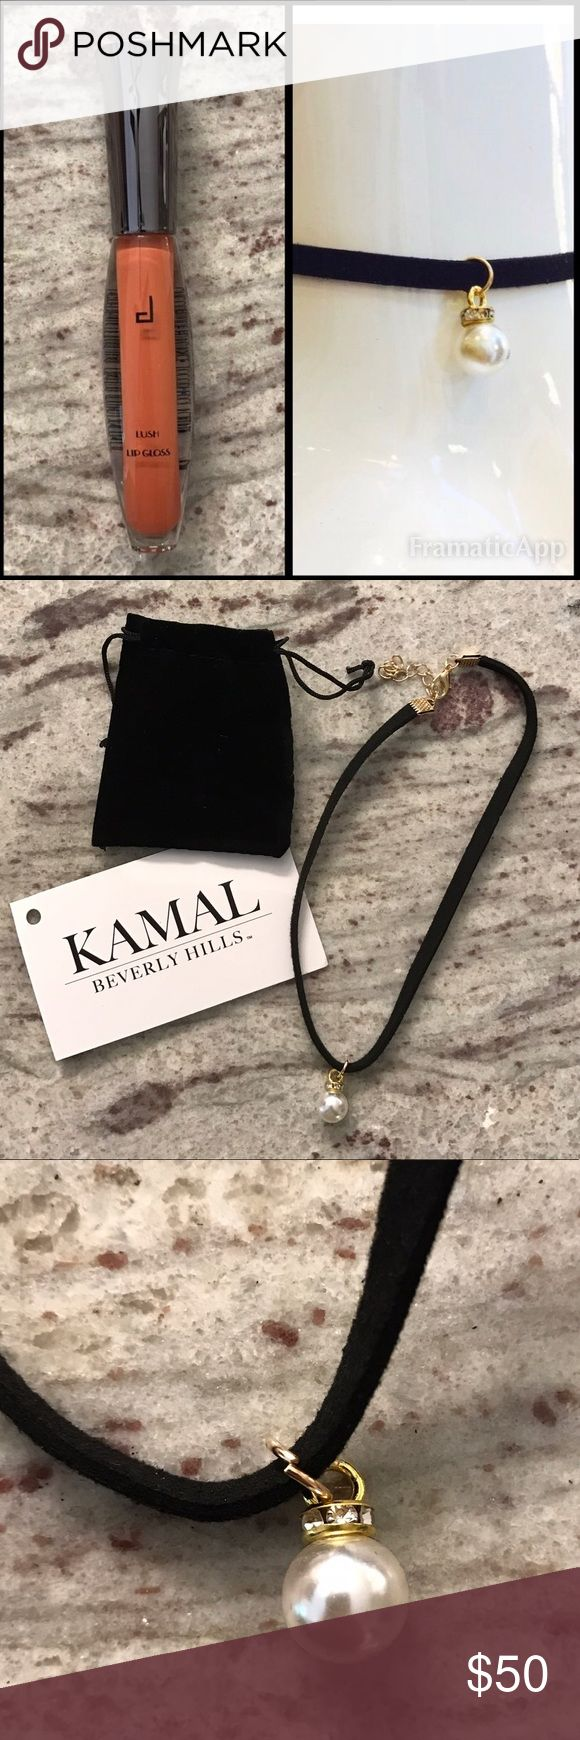 Kamal Beverly Hills Choker and Doucce Lip Gloss NWOT Kamal Beverly Hills Handmade Suede Choker with adjustable clasp. Retail $100. NWOT Doucce Lush Lip Gloss in Peachy Nature. A high definition lip gloss that delivers brilliant and sophisticated shine. The intensely concentrated pigments give off a shimmery radiant shine that shapes, defines, and sculpts the lips with ease. The silky and non-sticky textures build to the intensity you desire, while keeping the lips moisturized. Ask with any…